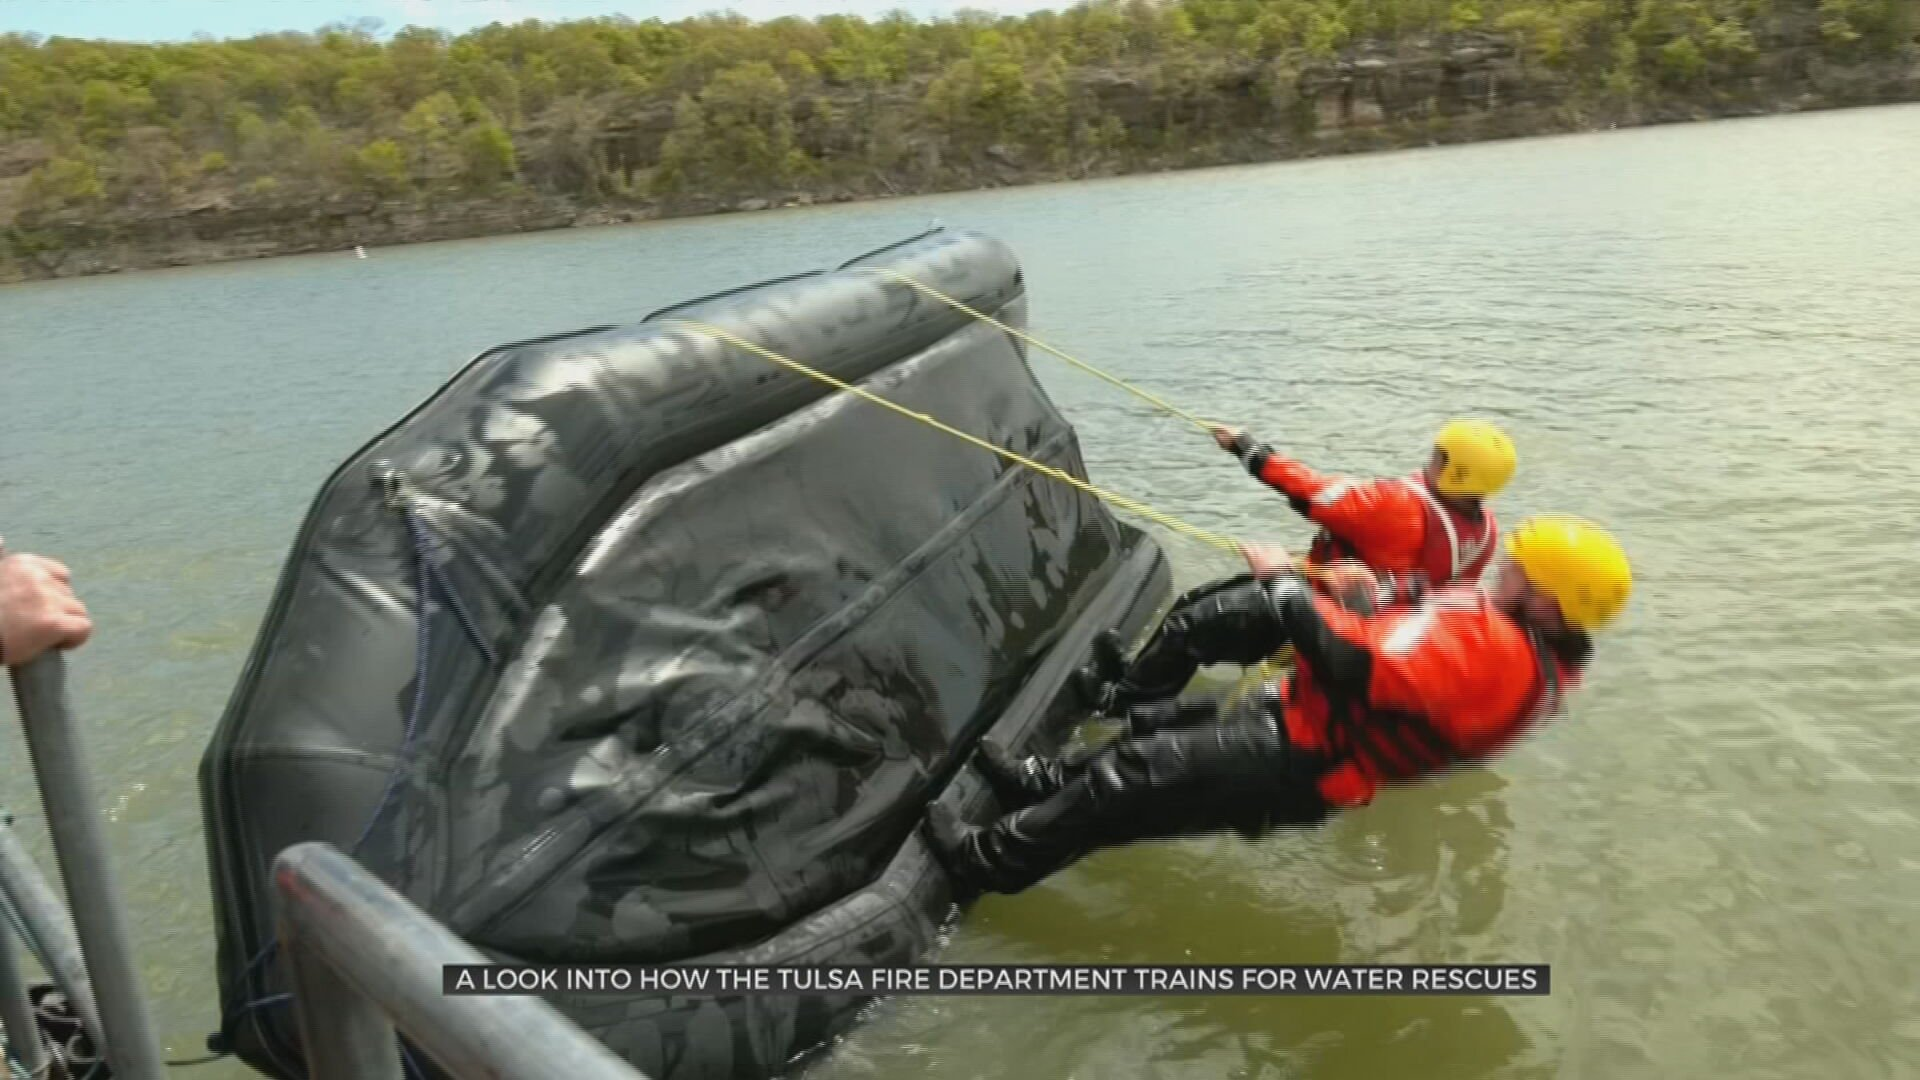 A Look At How The Tulsa Fire Department Trains For Water Rescues